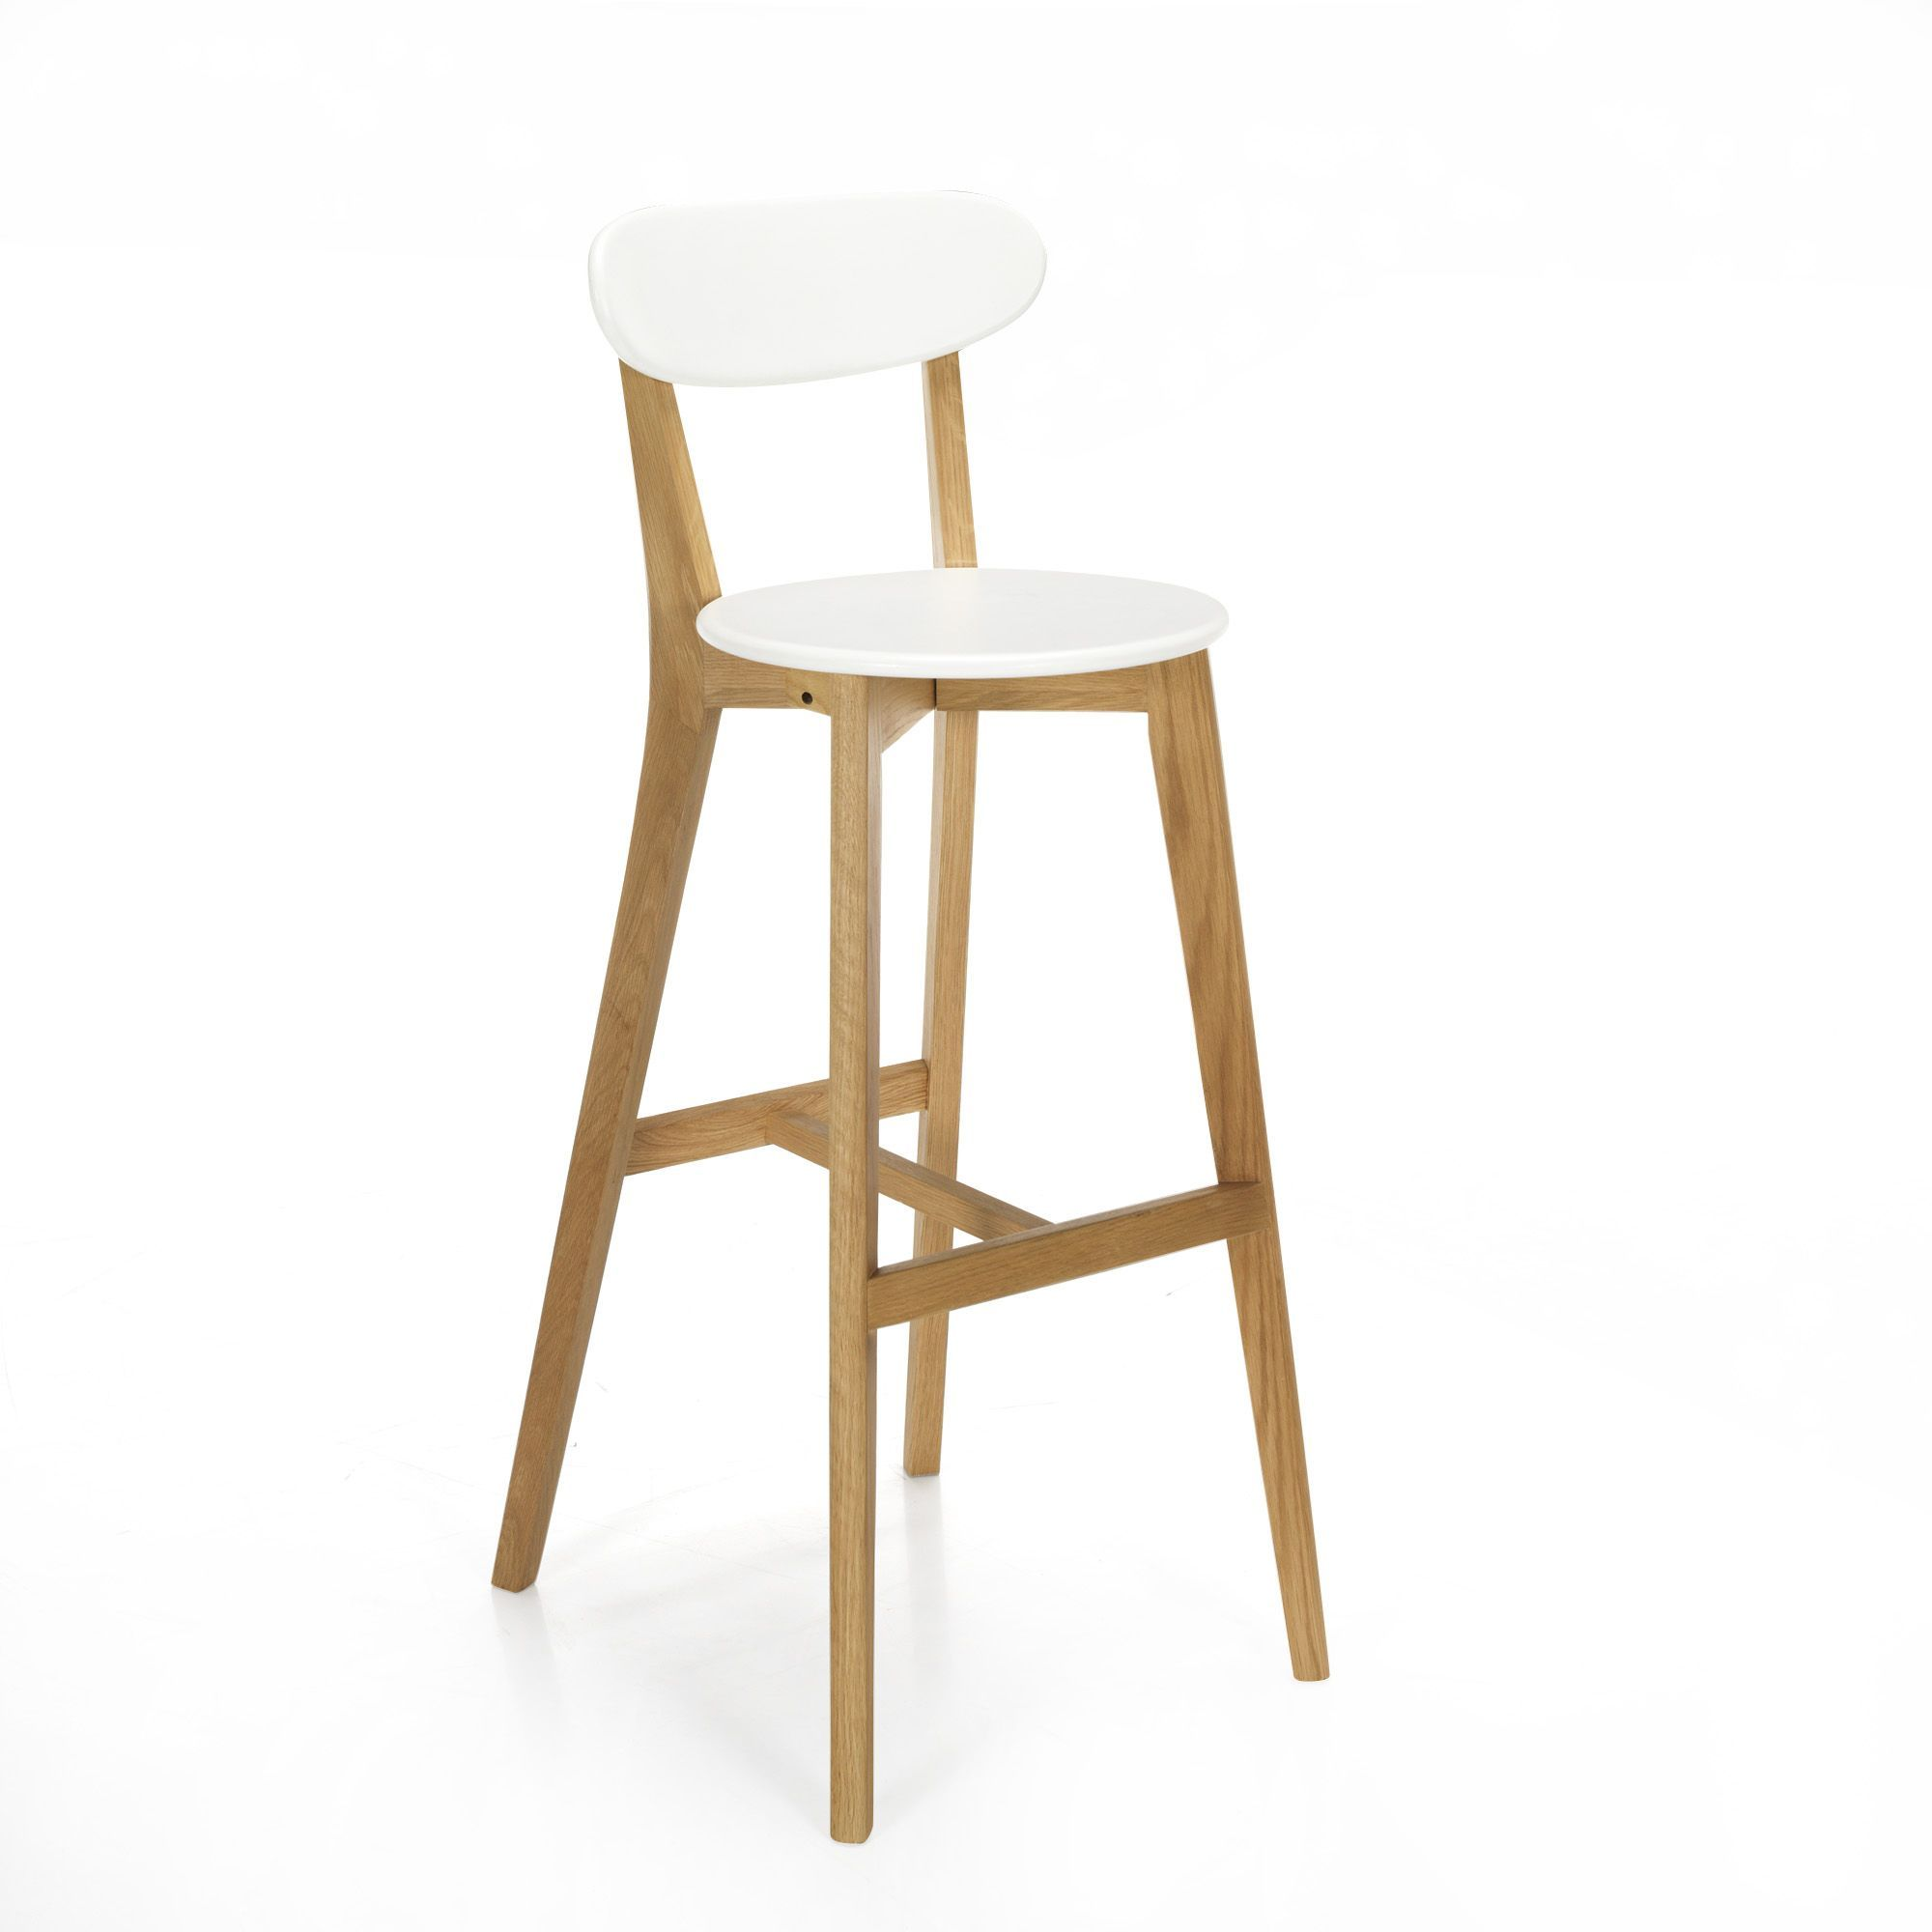 Mateo bain bar design and tables - Table et chaises pliantes ...